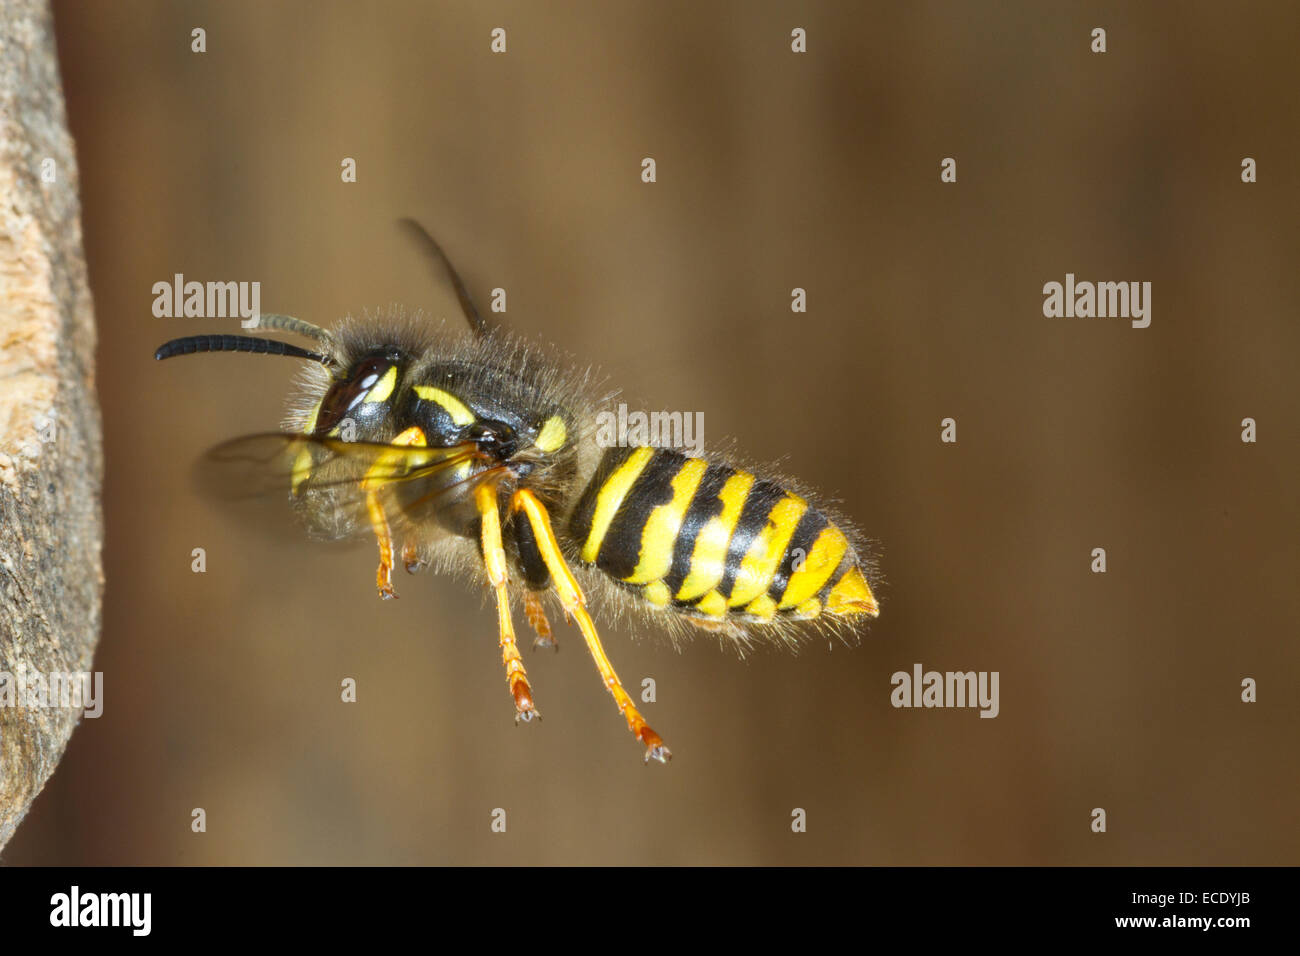 Tree Wasp (Dolichovespula sylvestris) adult worker in flight, arriving at the nest entrance with wood pulp for nest - Stock Image